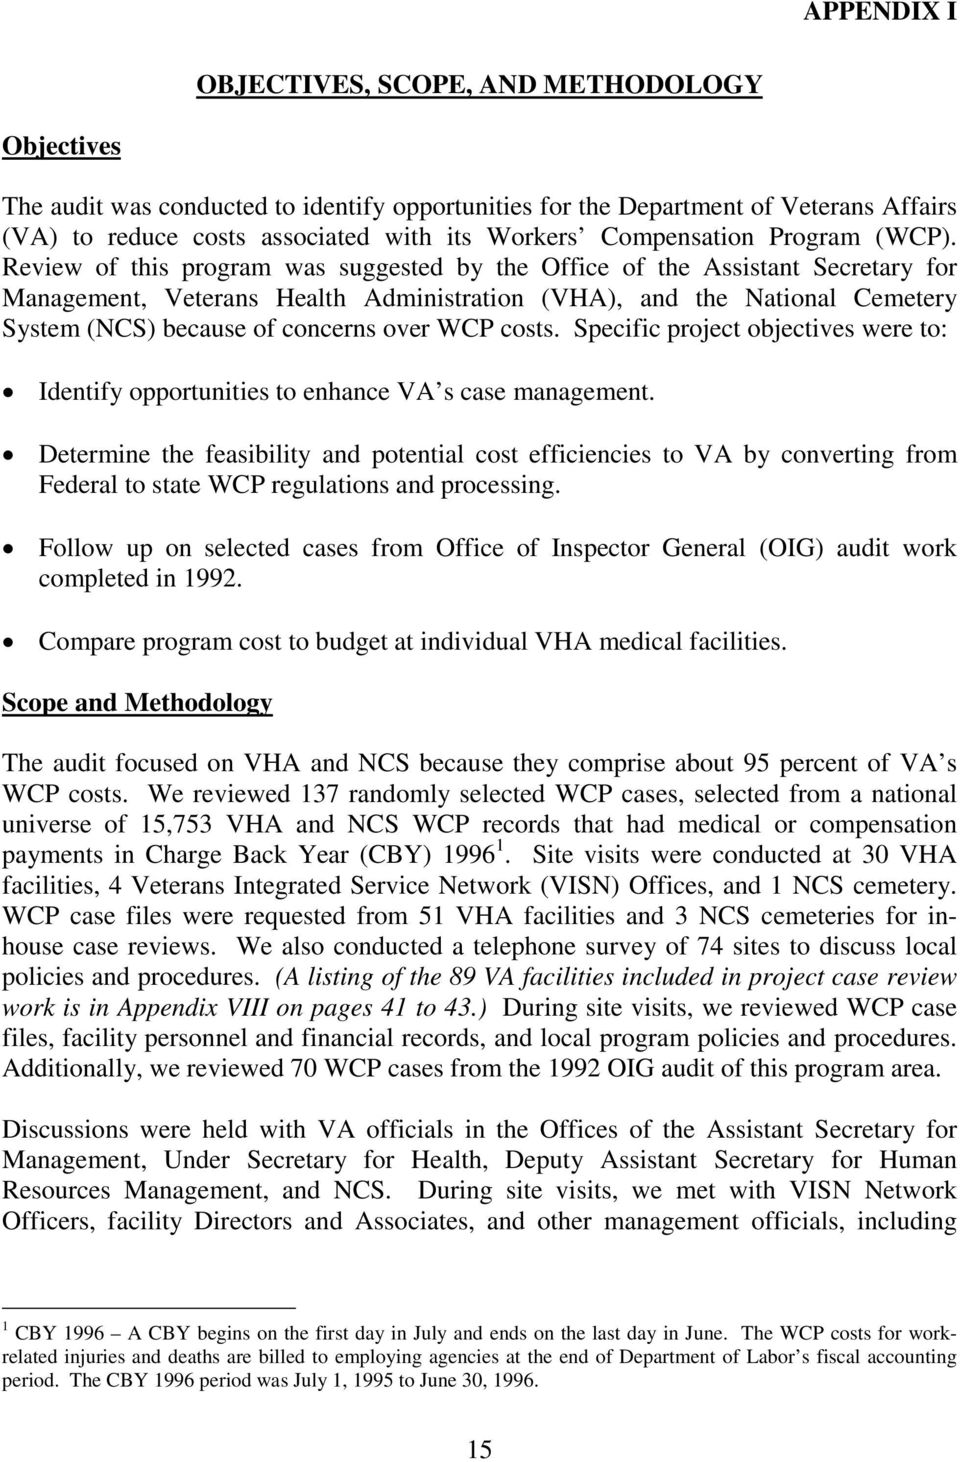 Review of this program was suggested by the Office of the Assistant Secretary for Management, Veterans Health Administration (VHA), and the National Cemetery System (NCS) because of concerns over WCP